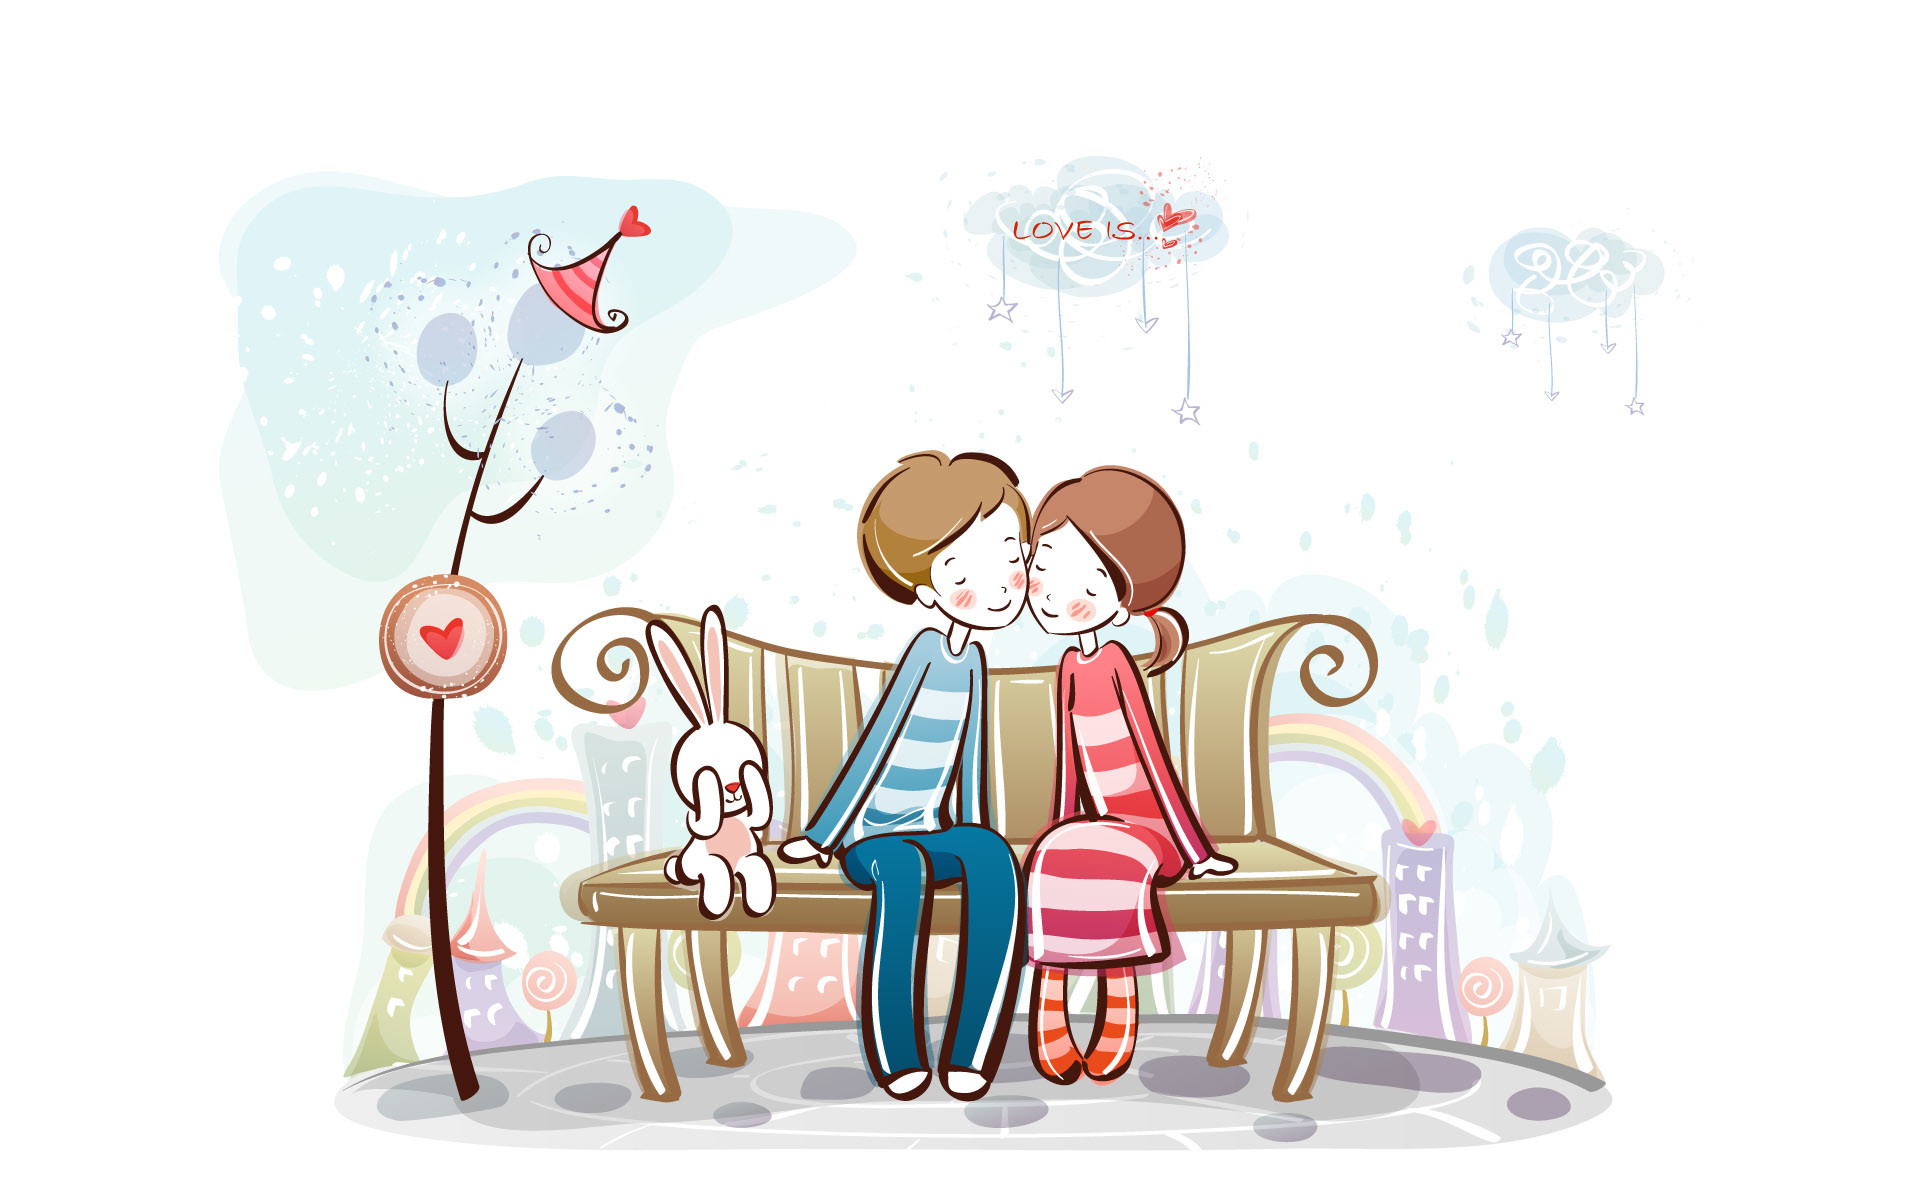 1920x1200 Young Love - Valentine Cute Couple illustrations - Sweet Couple on bench -  Valentine Couple, Valentine's Day illustrations 34